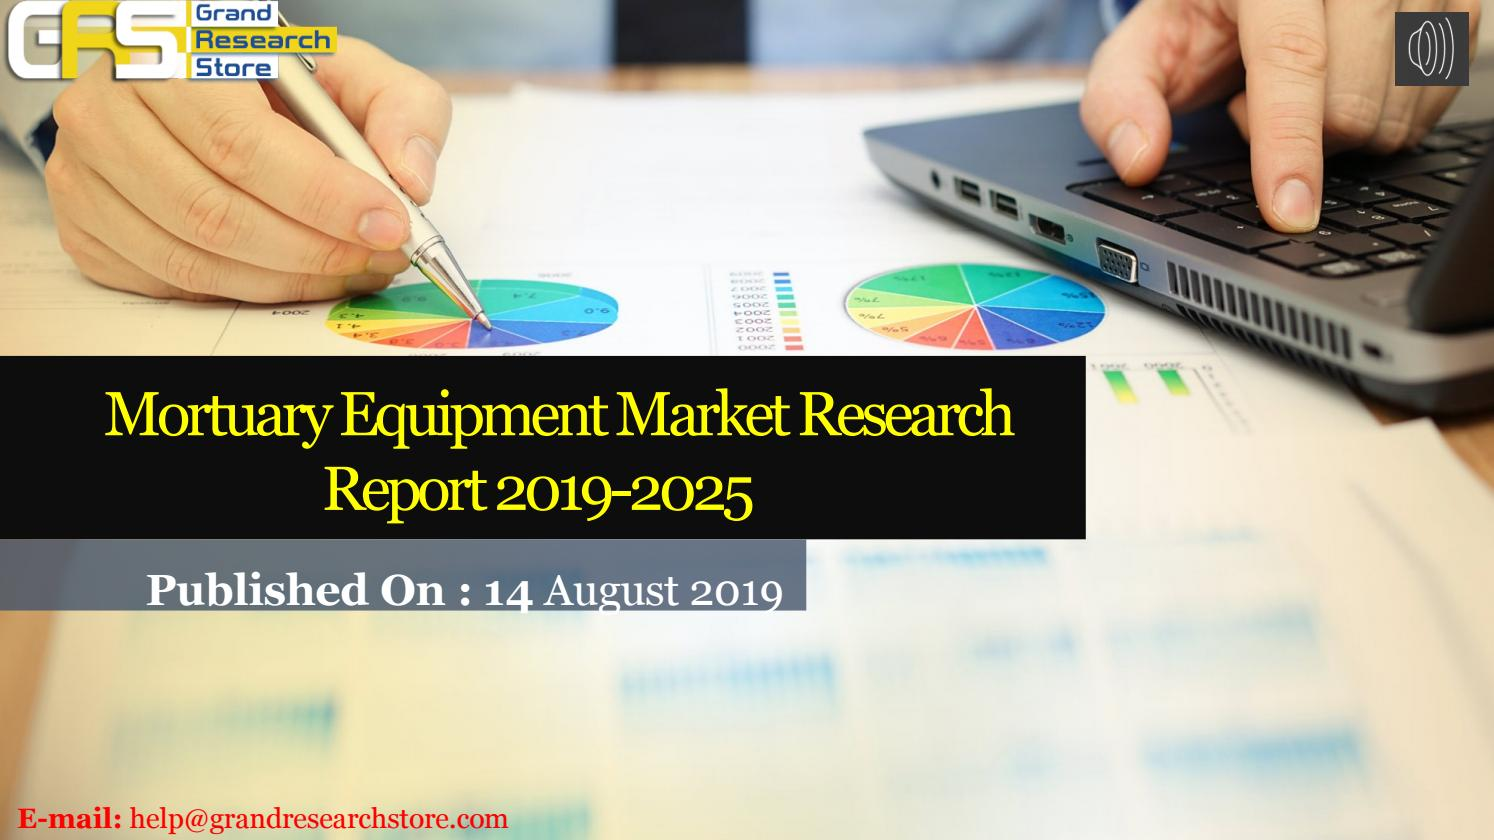 Mortuary equipment market research report 2019 2023 by